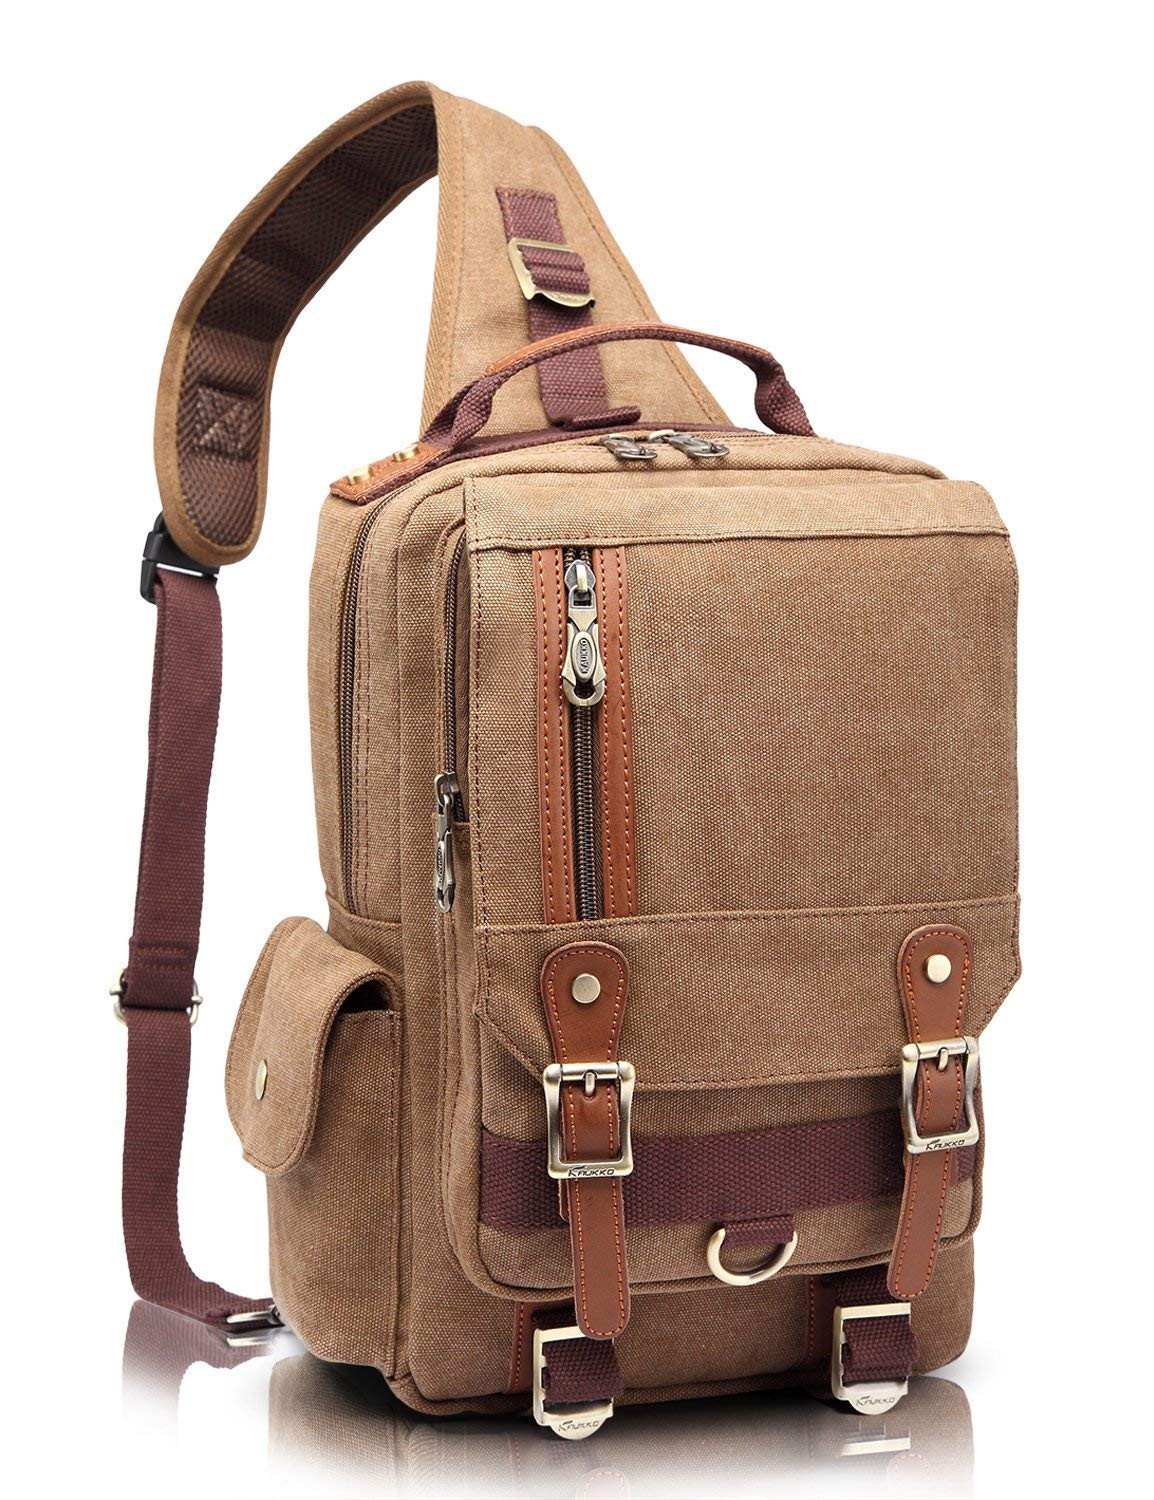 KAUKKO Canvas Messenger Bag Cross Body Shoulder Sling Backpack Travel Hiking Chest Bag FD25212